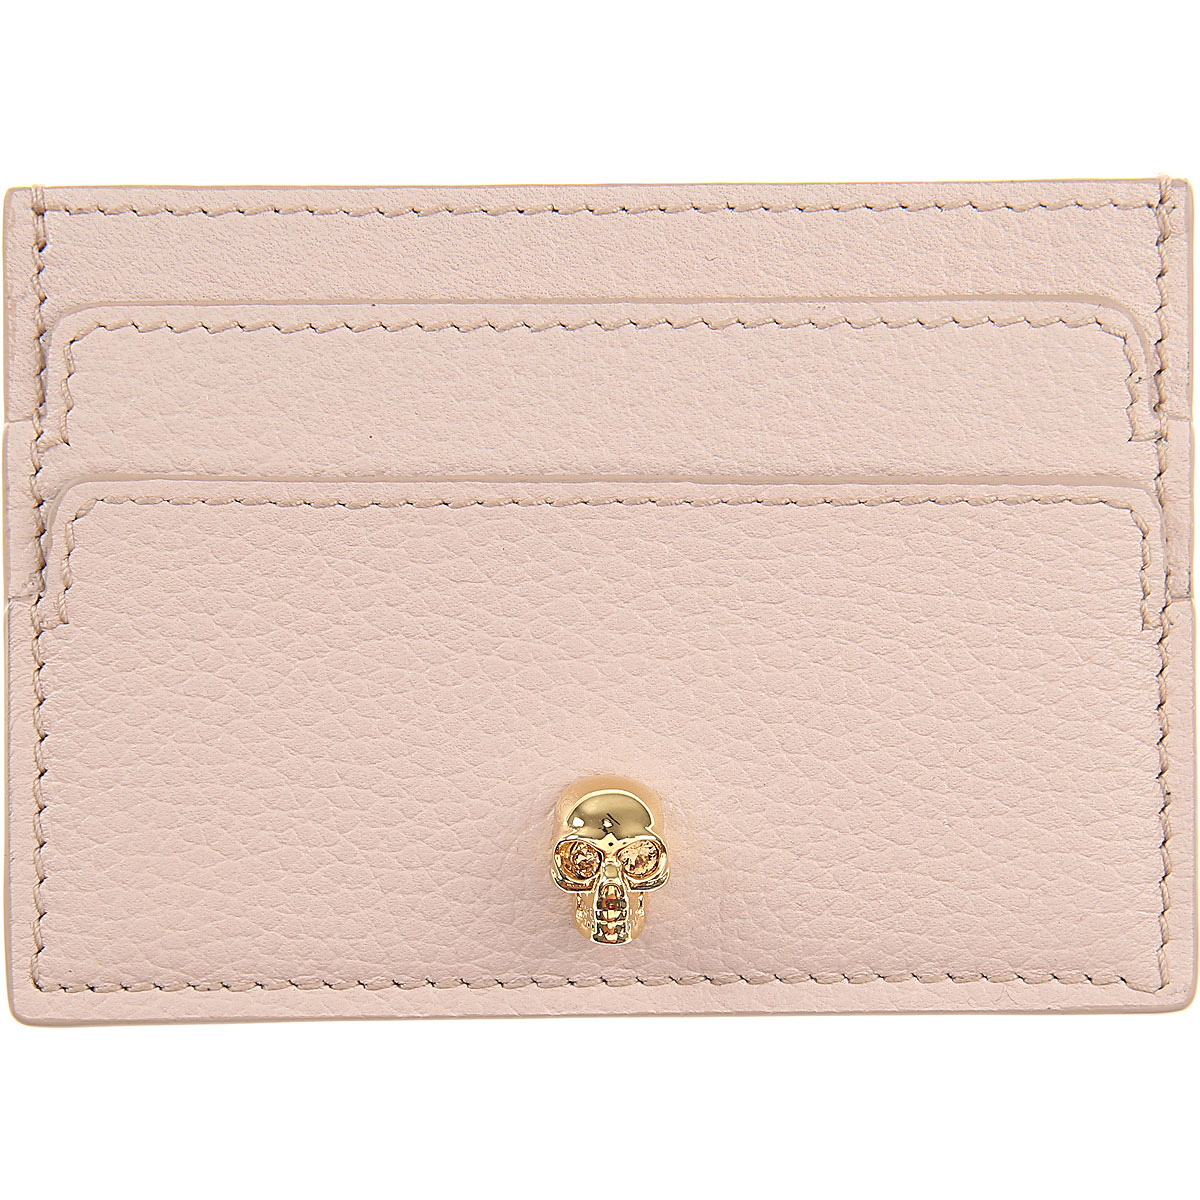 Image of Alexander McQueen Card Holder for Women, Powder Rose, Leather, 2017